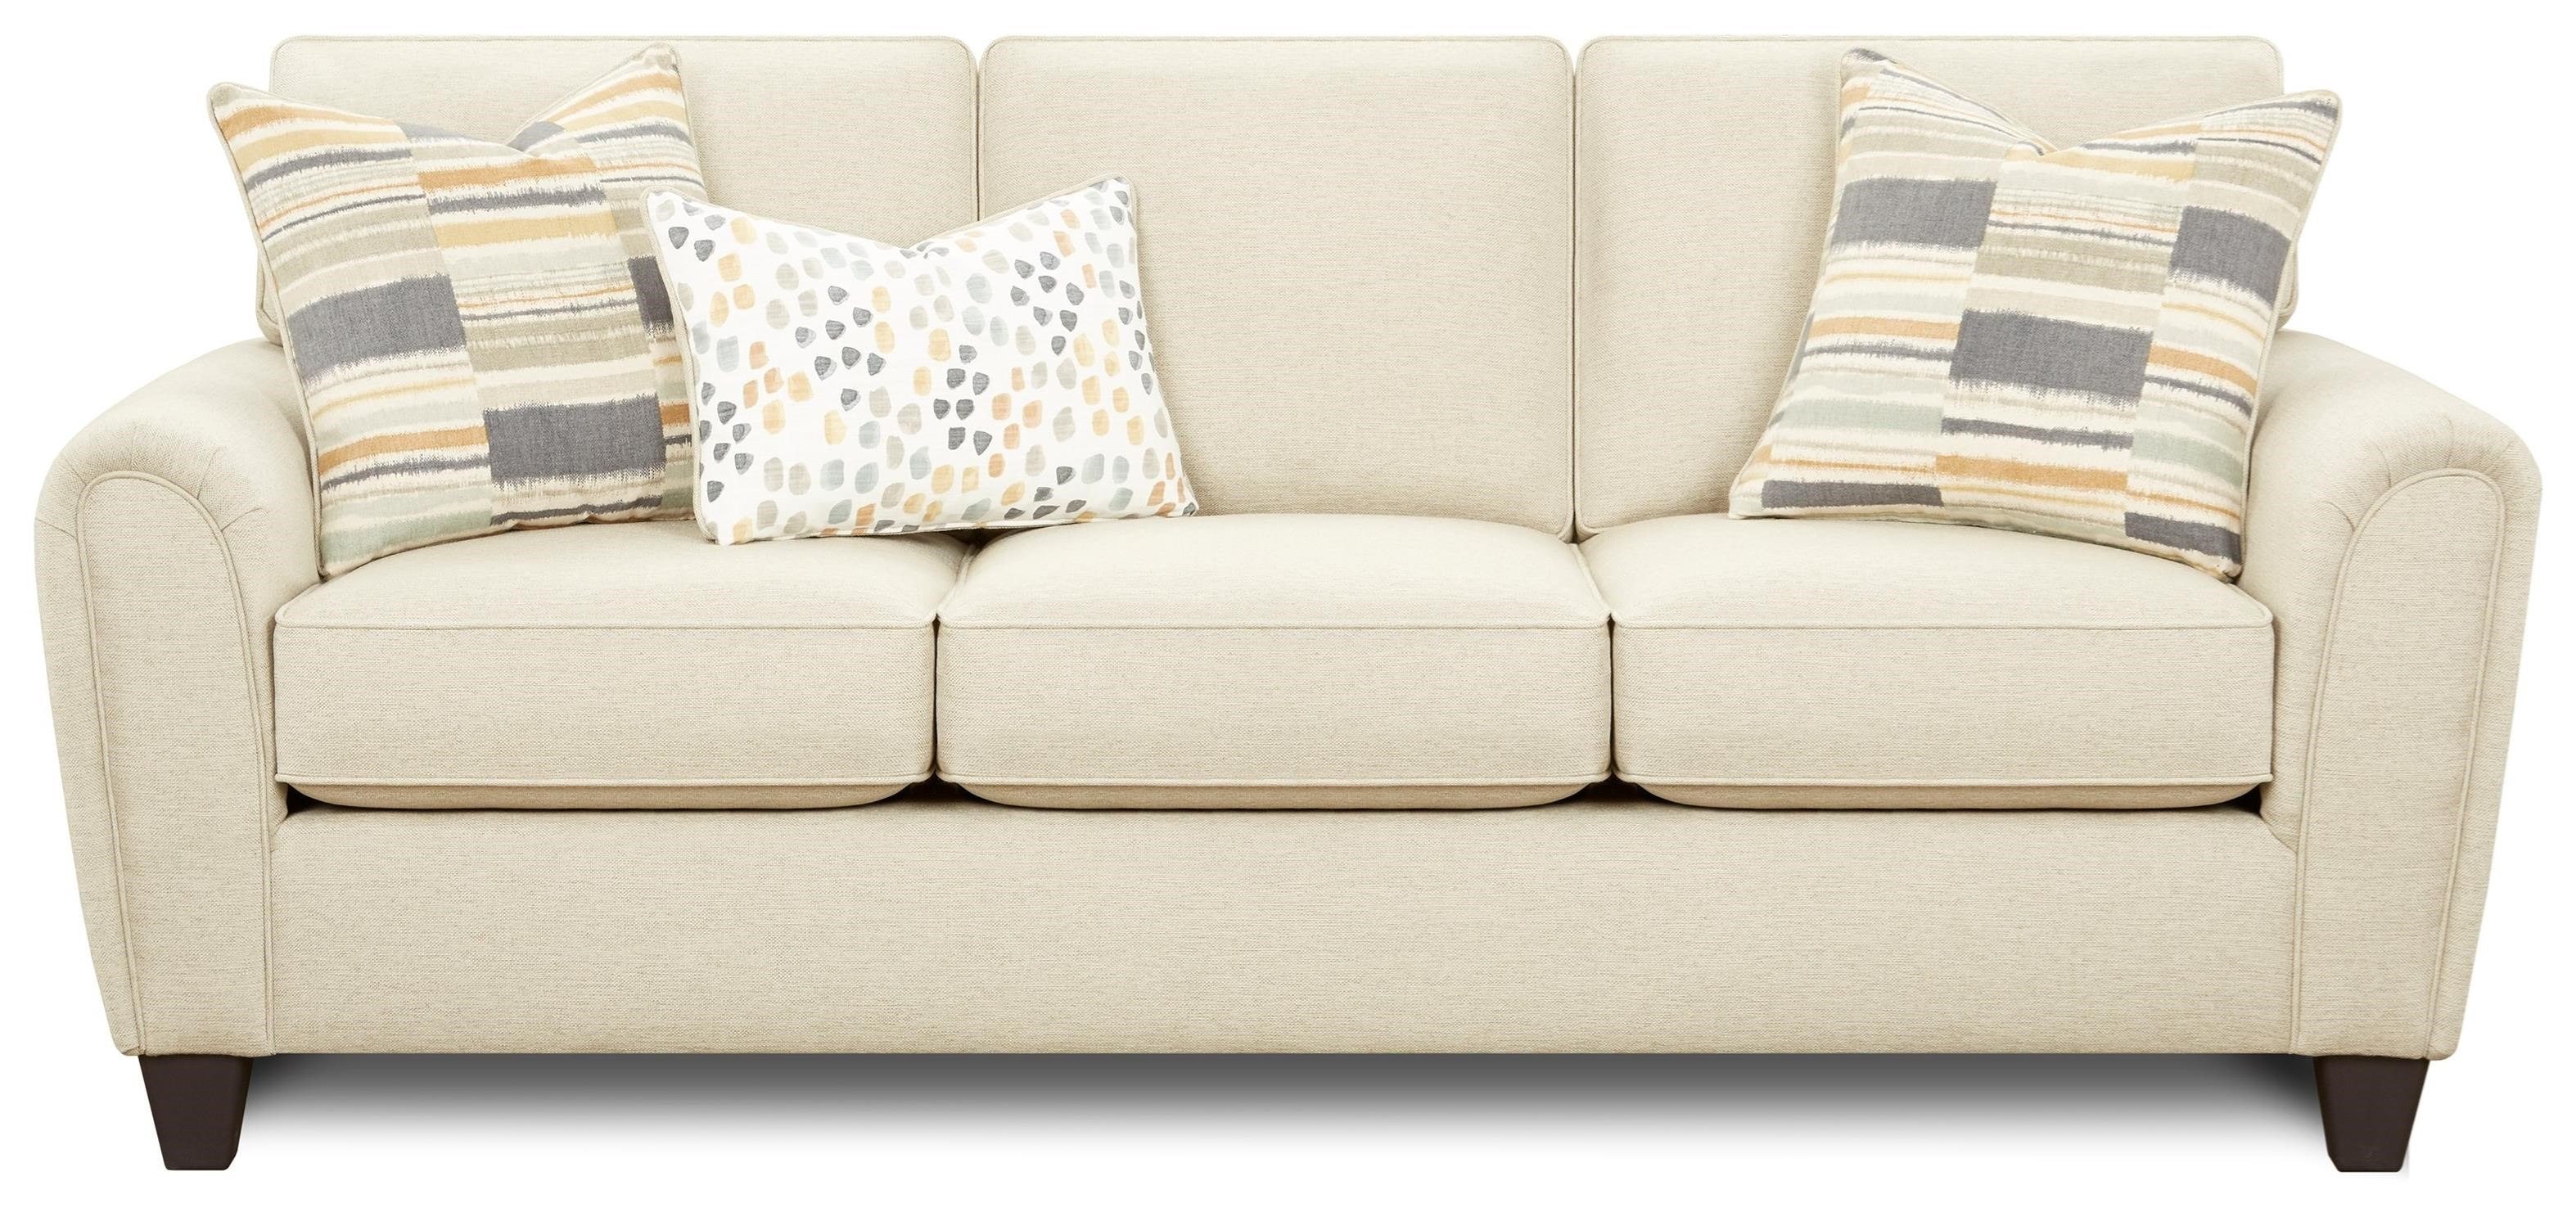 49-00 Sofa by Fusion Furniture at Miller Waldrop Furniture and Decor